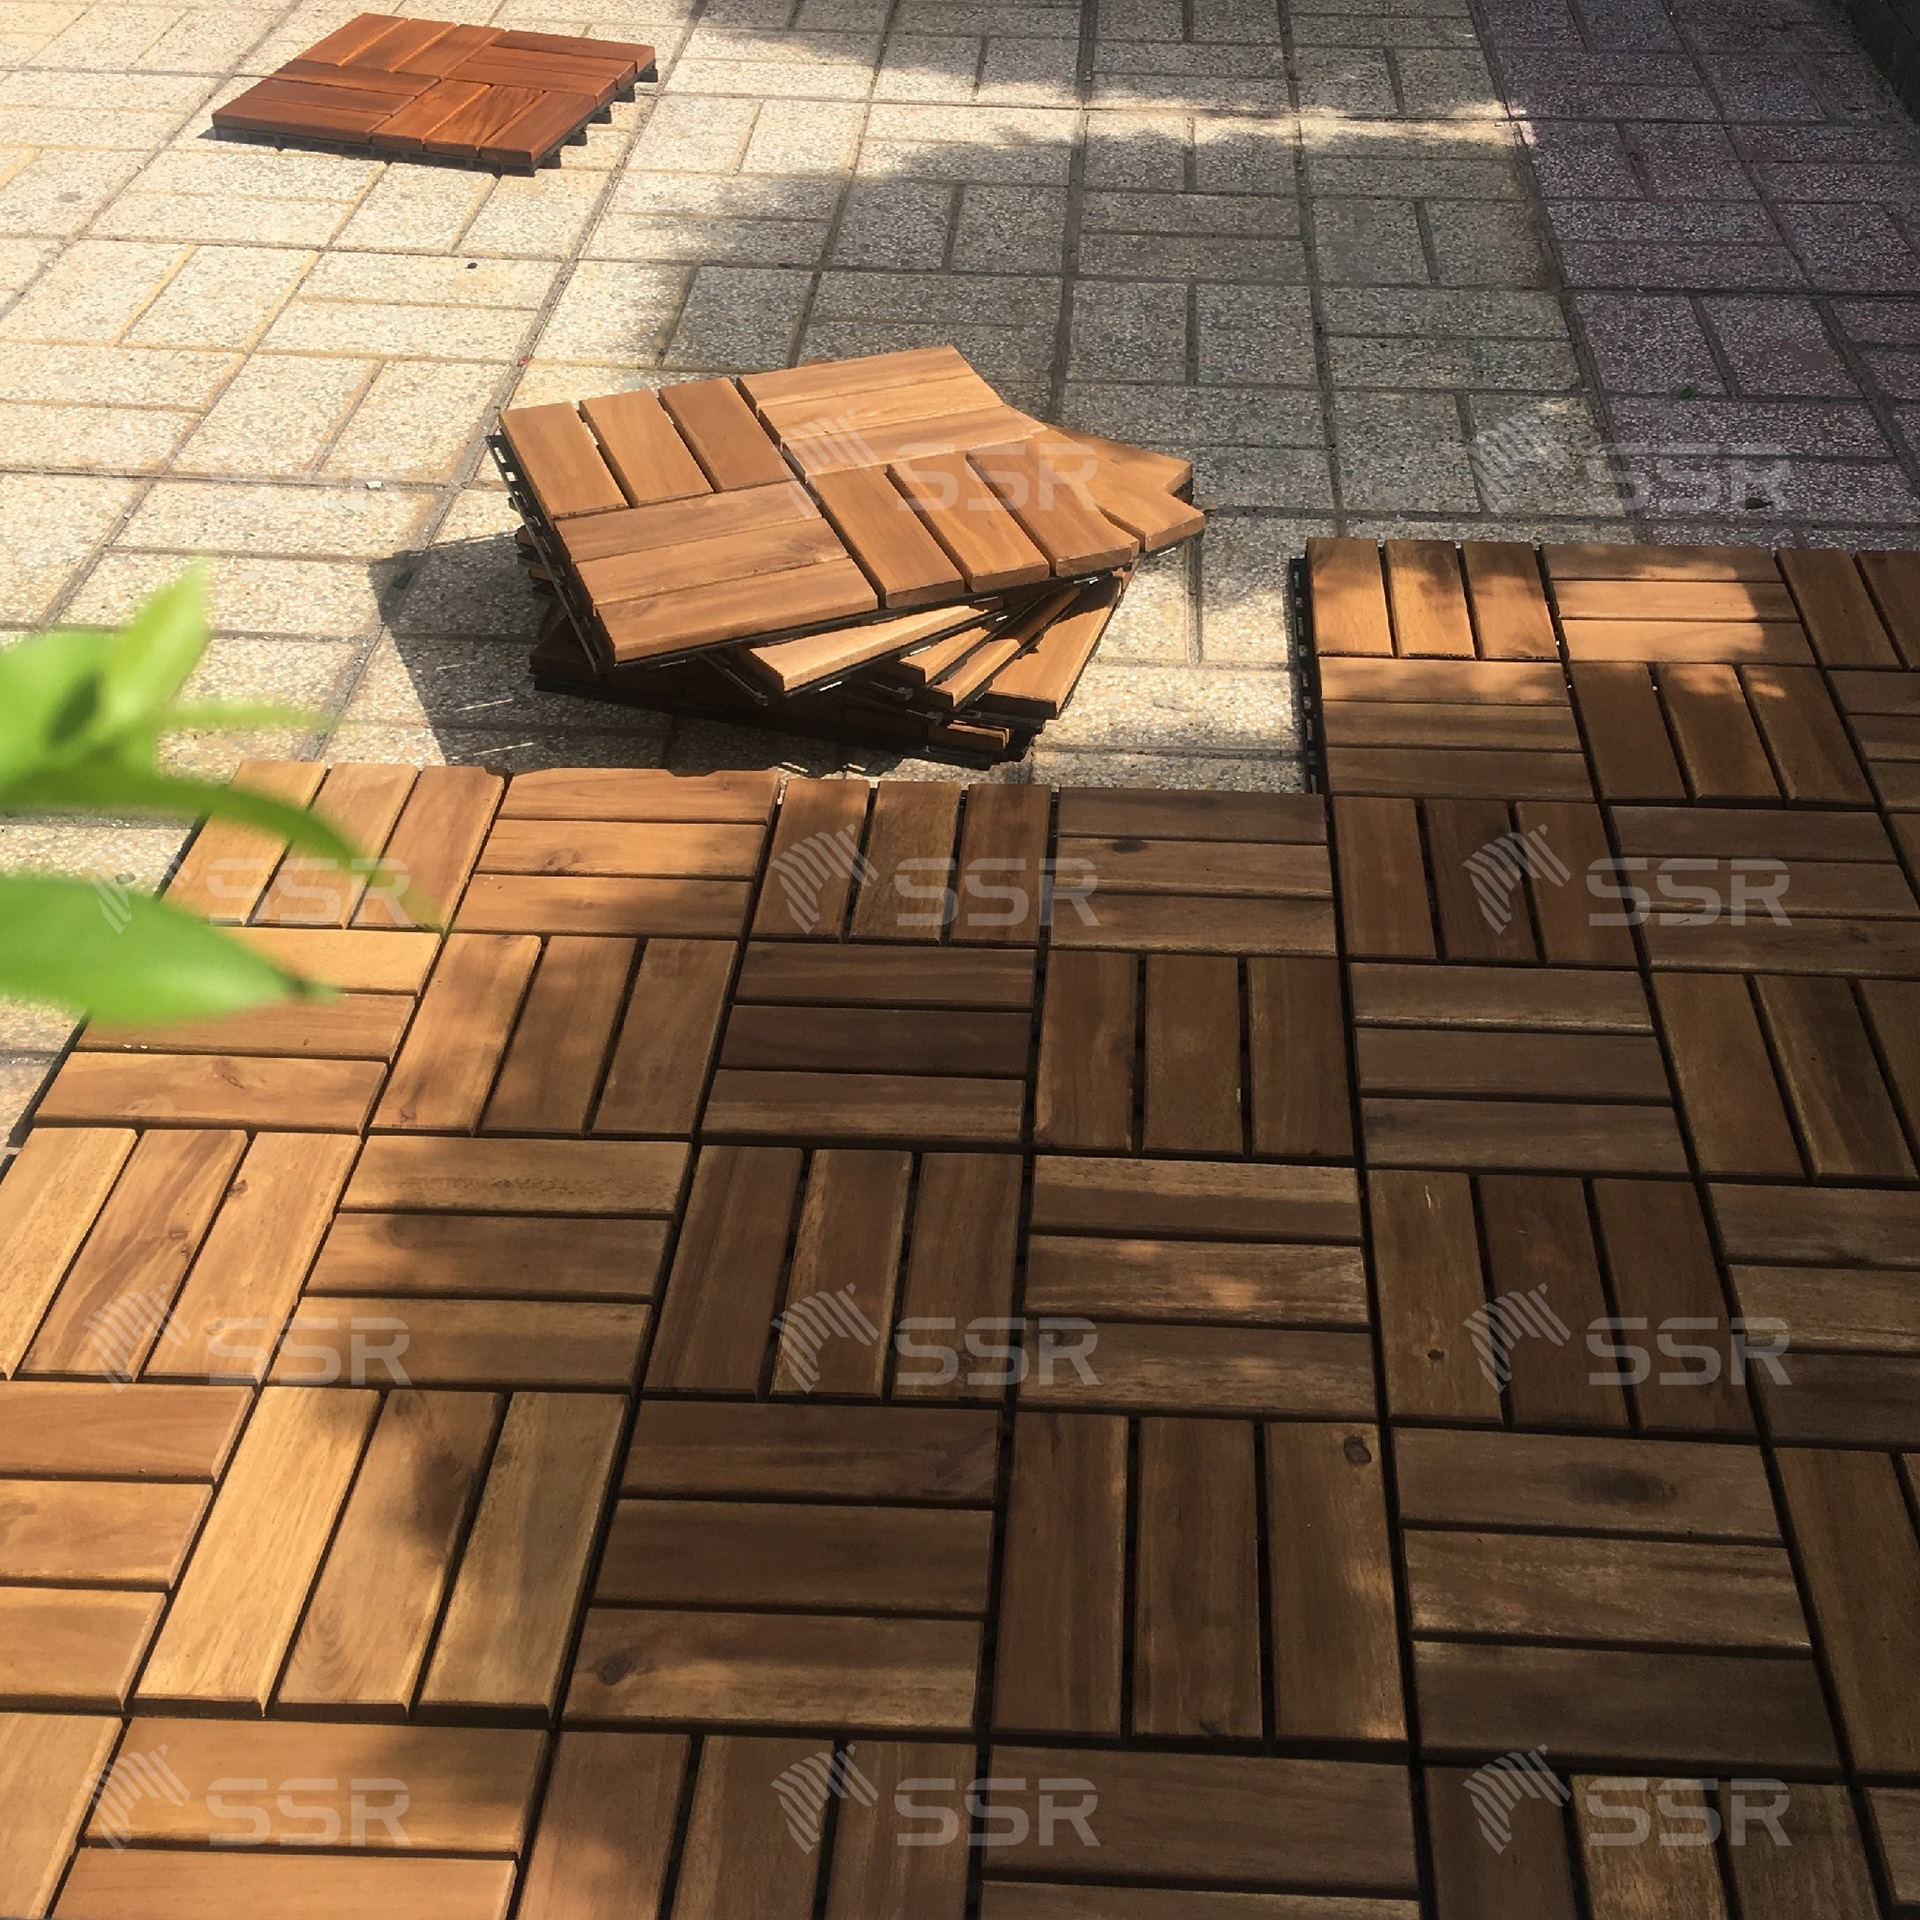 Deck Tile Flooring Decking Acacia Wood Industry Global Commerce Trade International Wood Products Supplier Wholesale FSC Certified